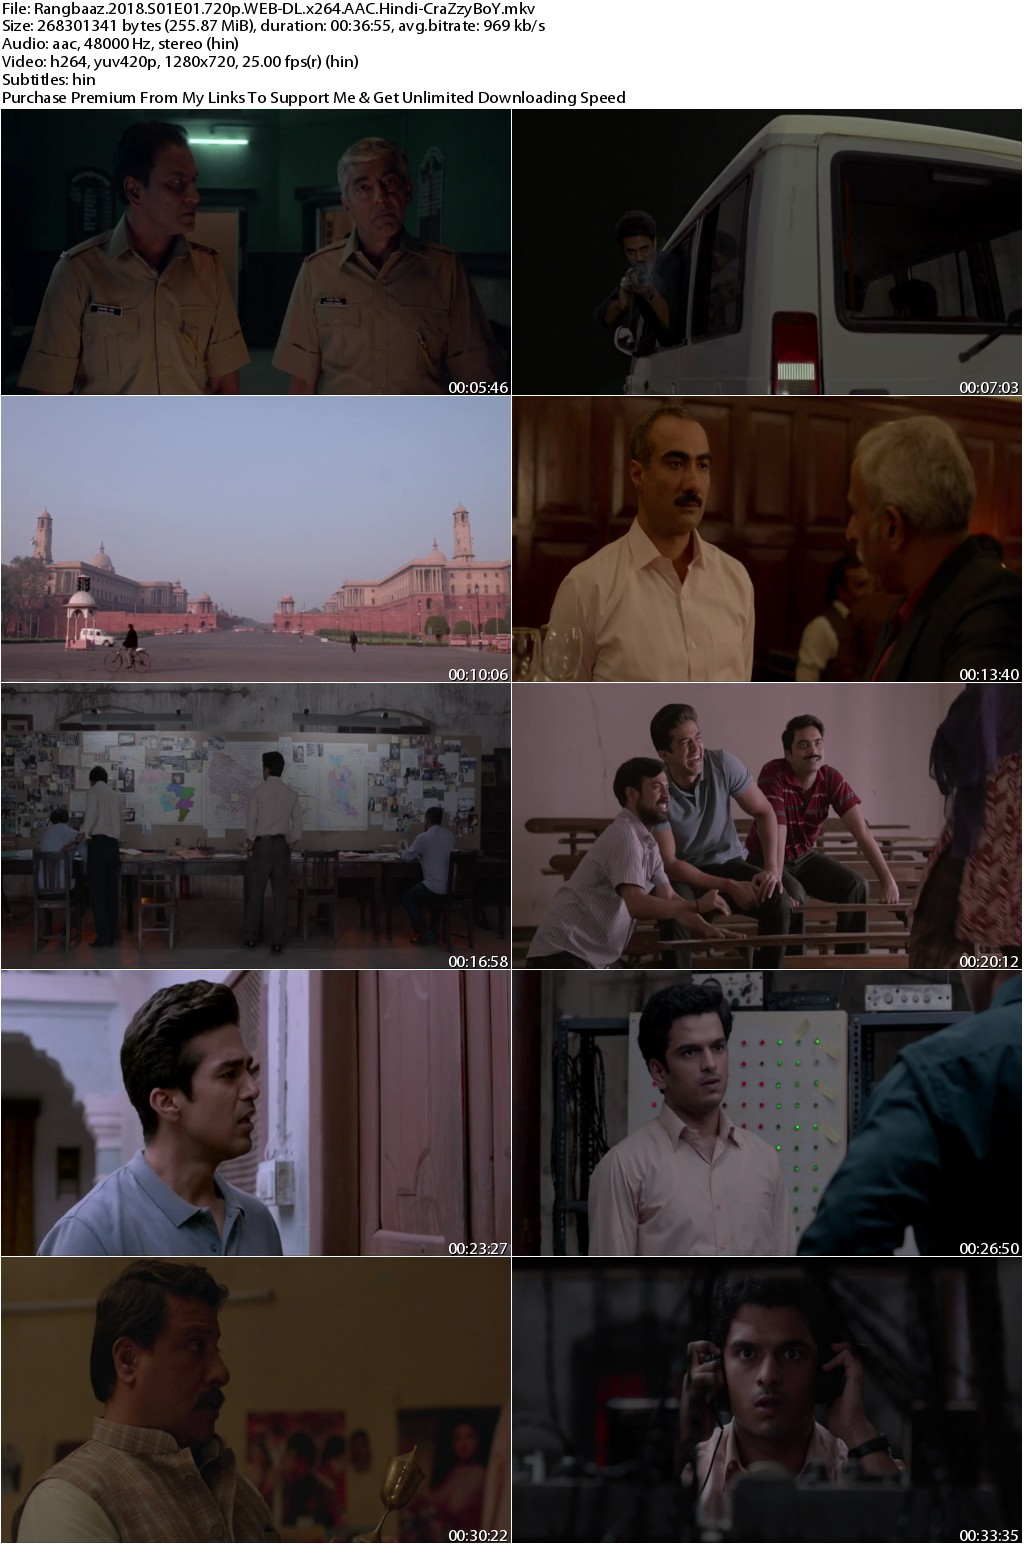 Rangbaaz 2018 Season 01 All 09 Episodes 720p WEB-DL x264 AAC Hindi 2.10GB-CraZzyBoY